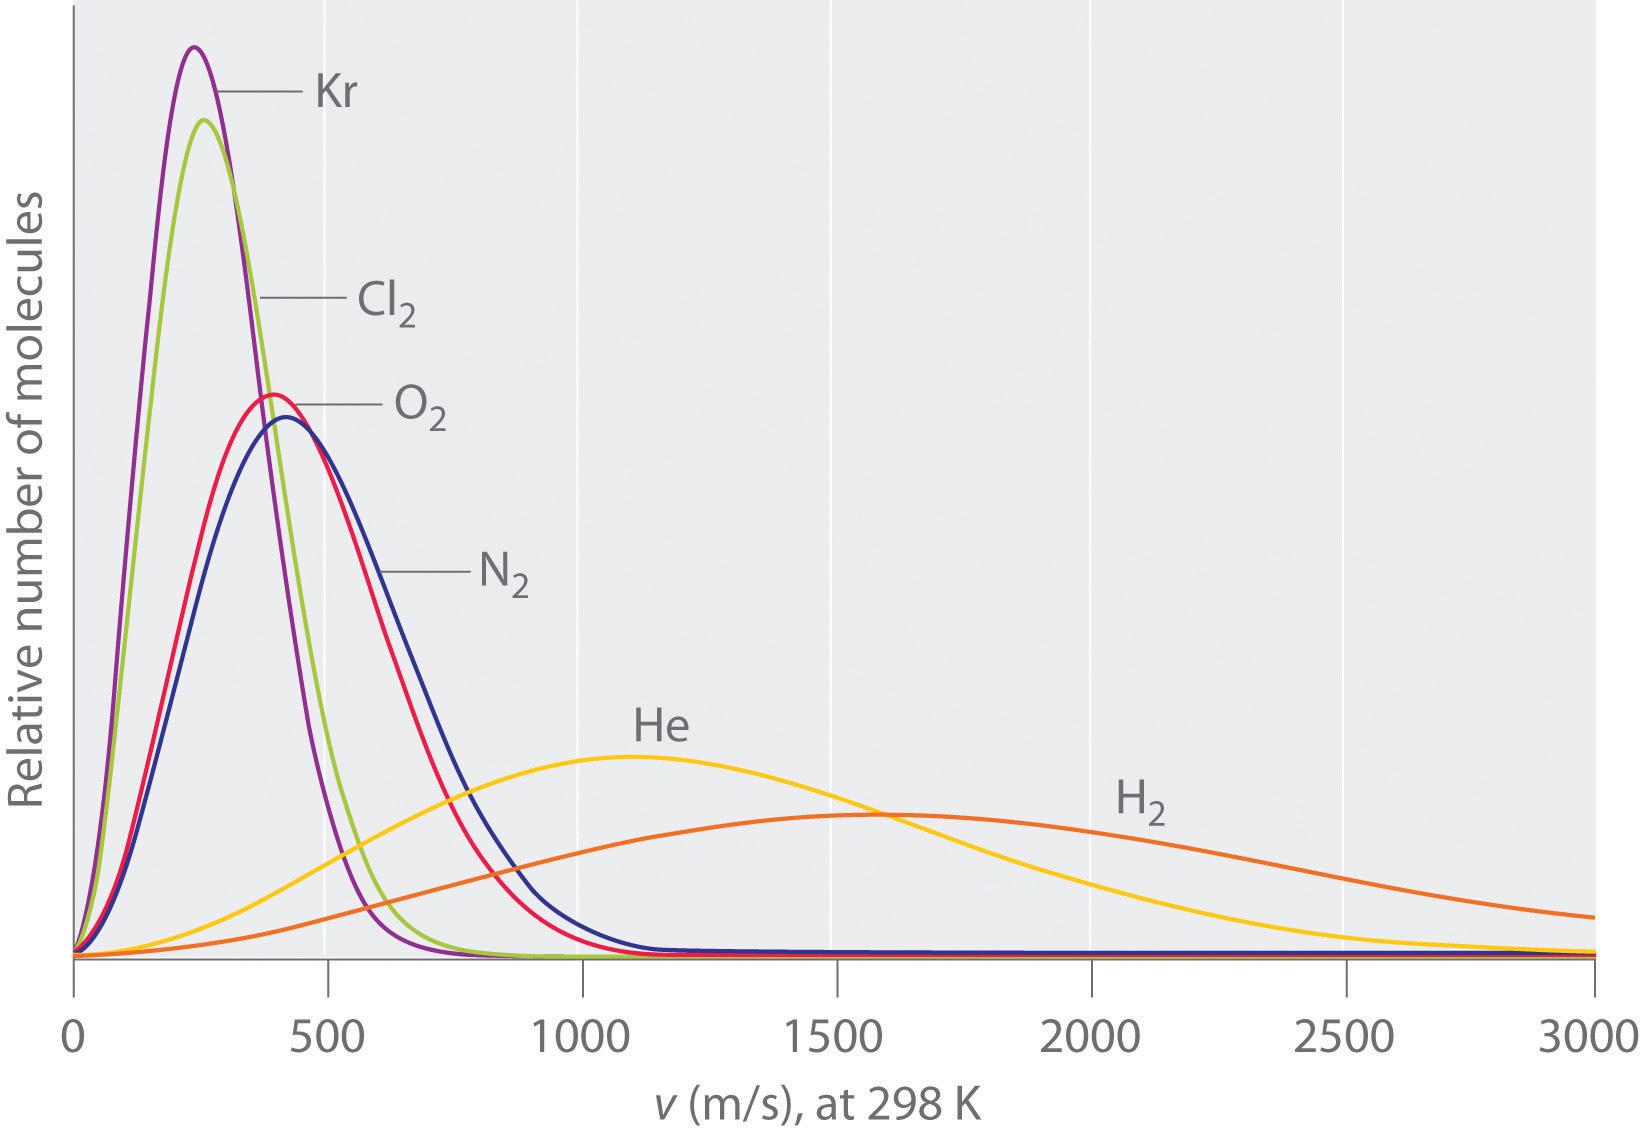 kinetic molecular theory of gases Kinetic molecular theory has been used to describe the properties of gases, and how particles interact with each other here is some information about the same.